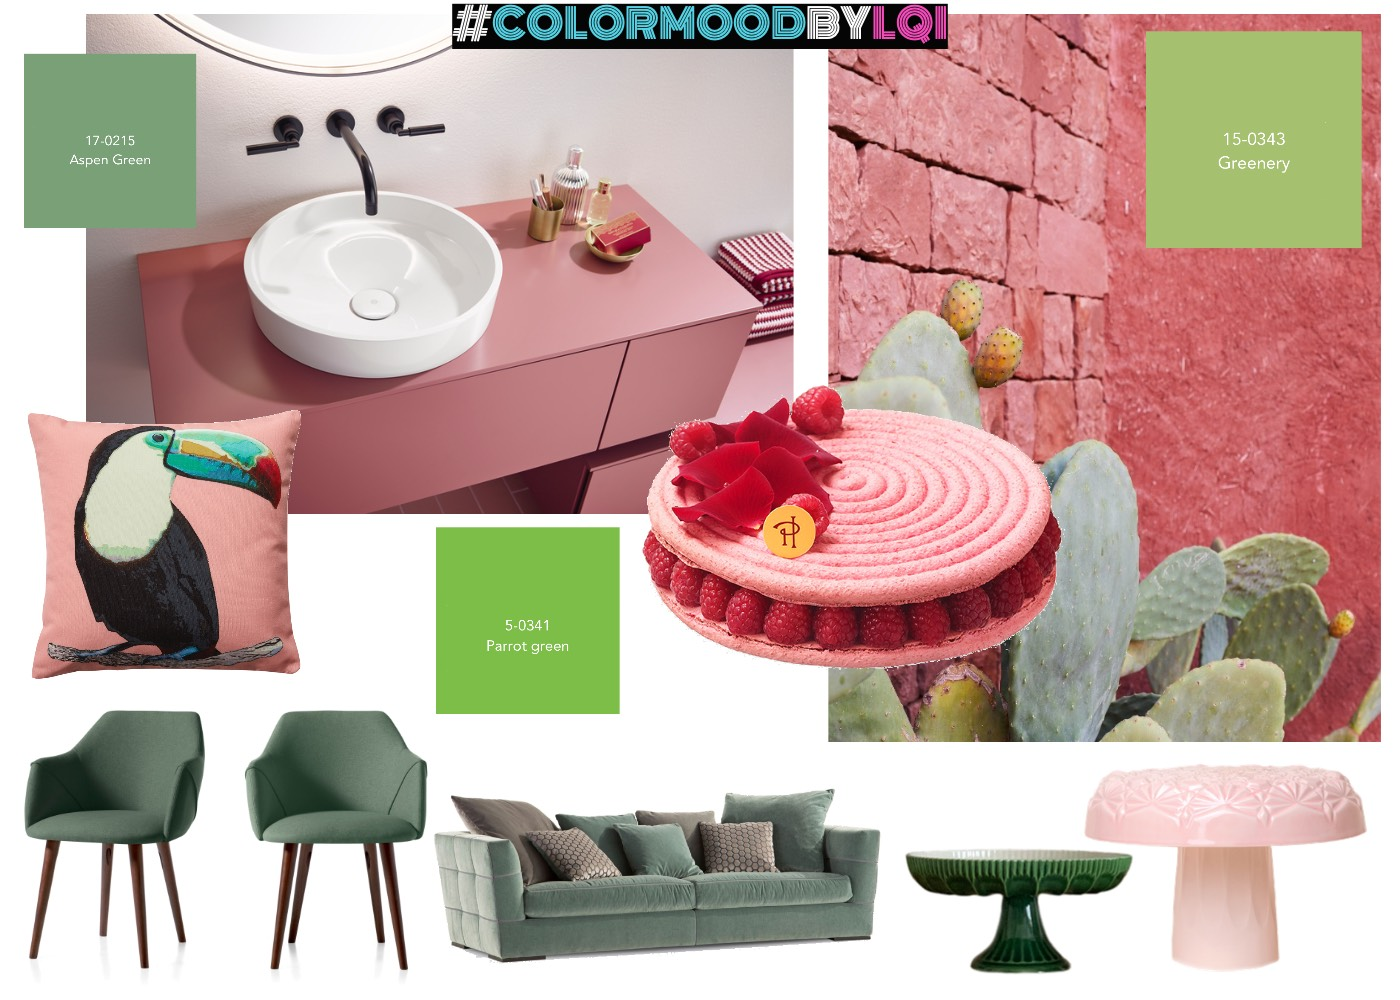 #COLORMOODBYLQ PINKY GREENERY